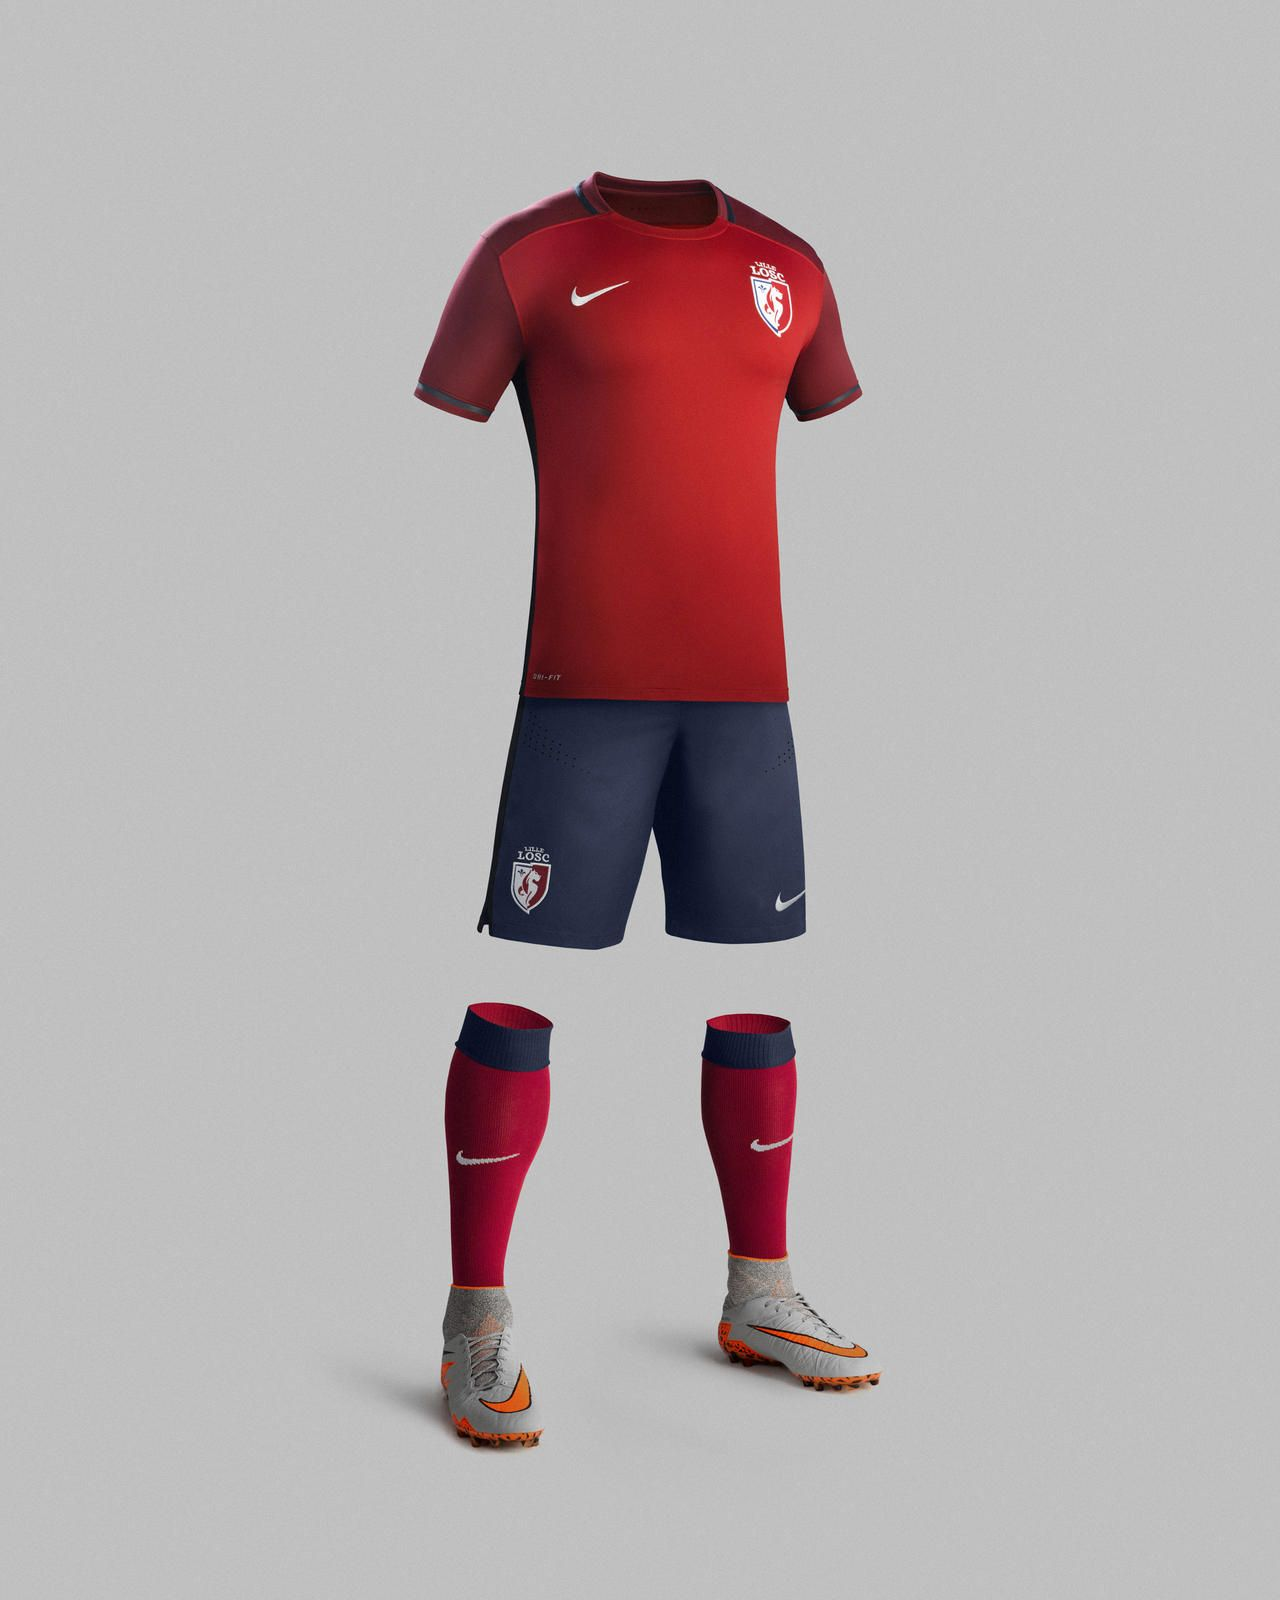 Nike News - Modern Design Brings a Fresh Aesthetic to Classic Colors for Lille  OSC 2015-16 Home Kit 36aa10fce8b4a